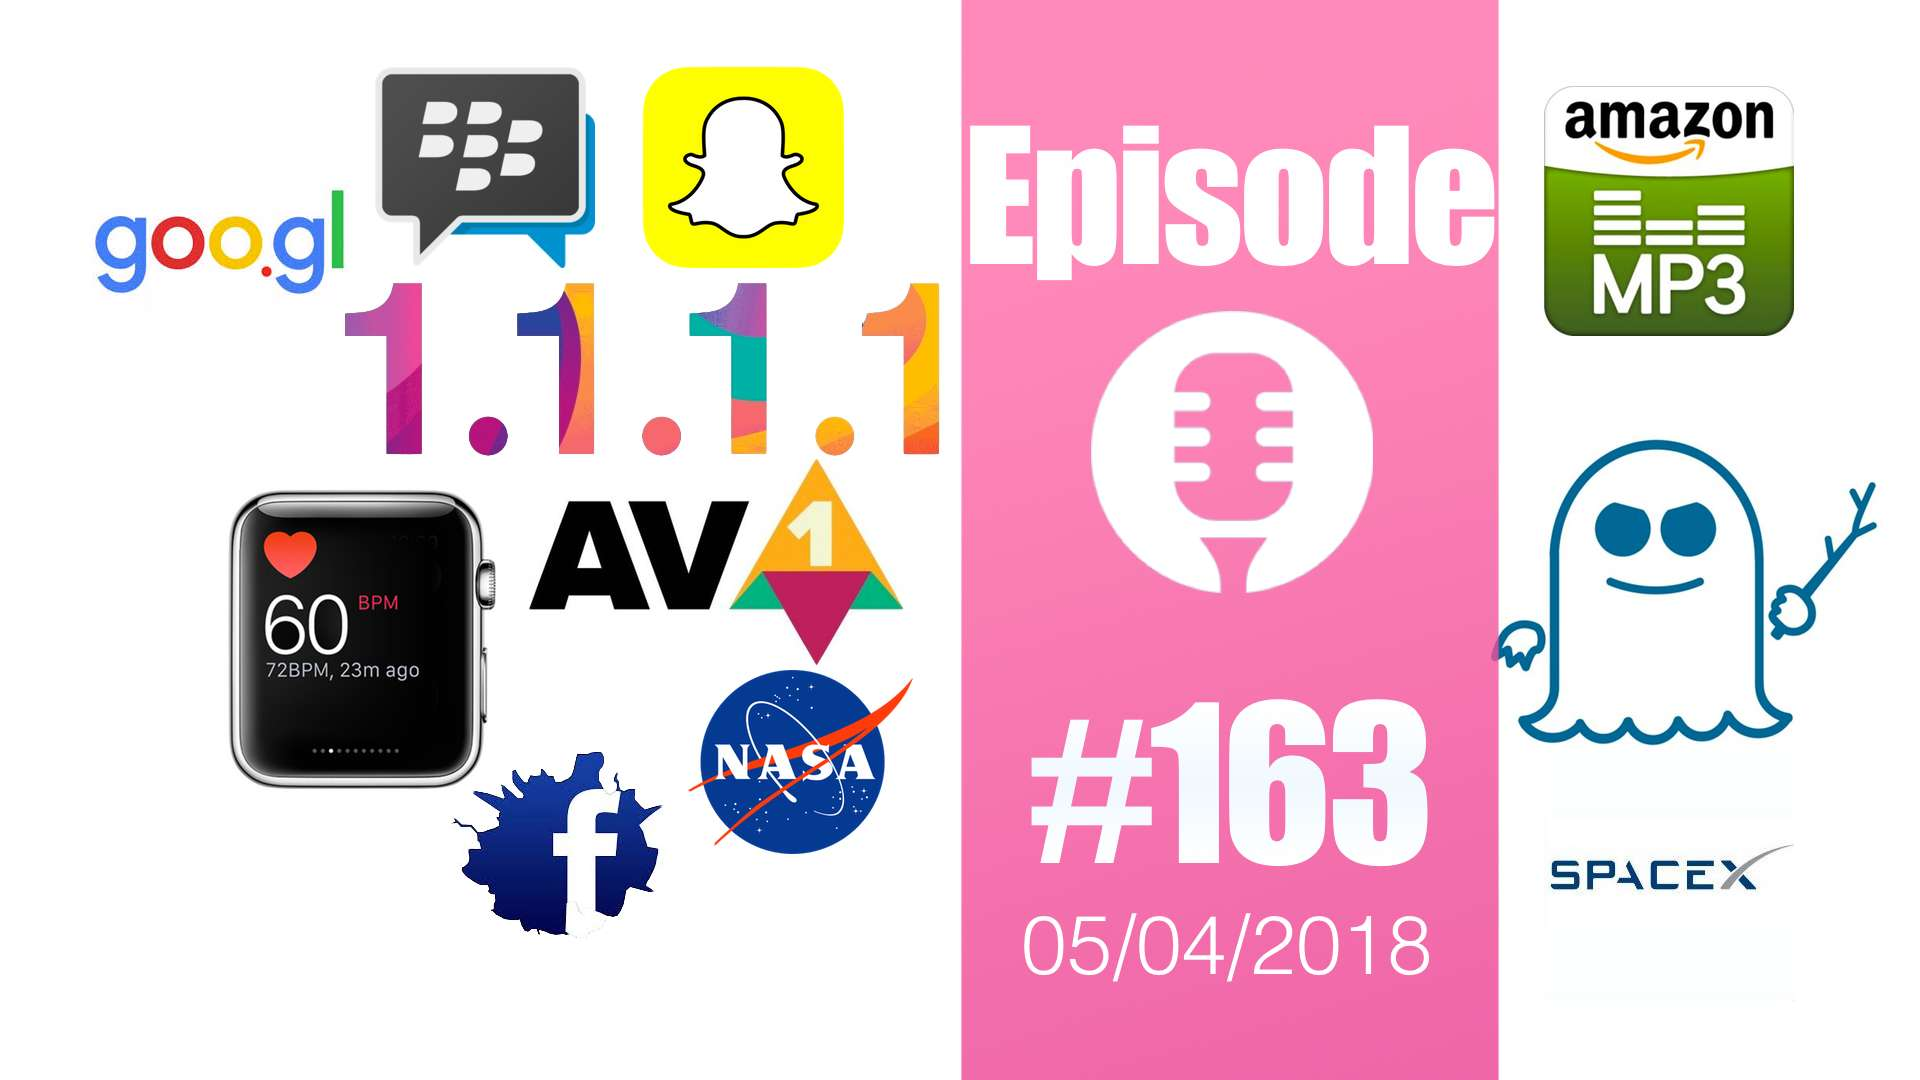 #163: Apple Watch, codec AV1, DNS Cloudflare, Spectre, SpaceX, Snapchat , Blackberry, Amazon, Goo.gl,…